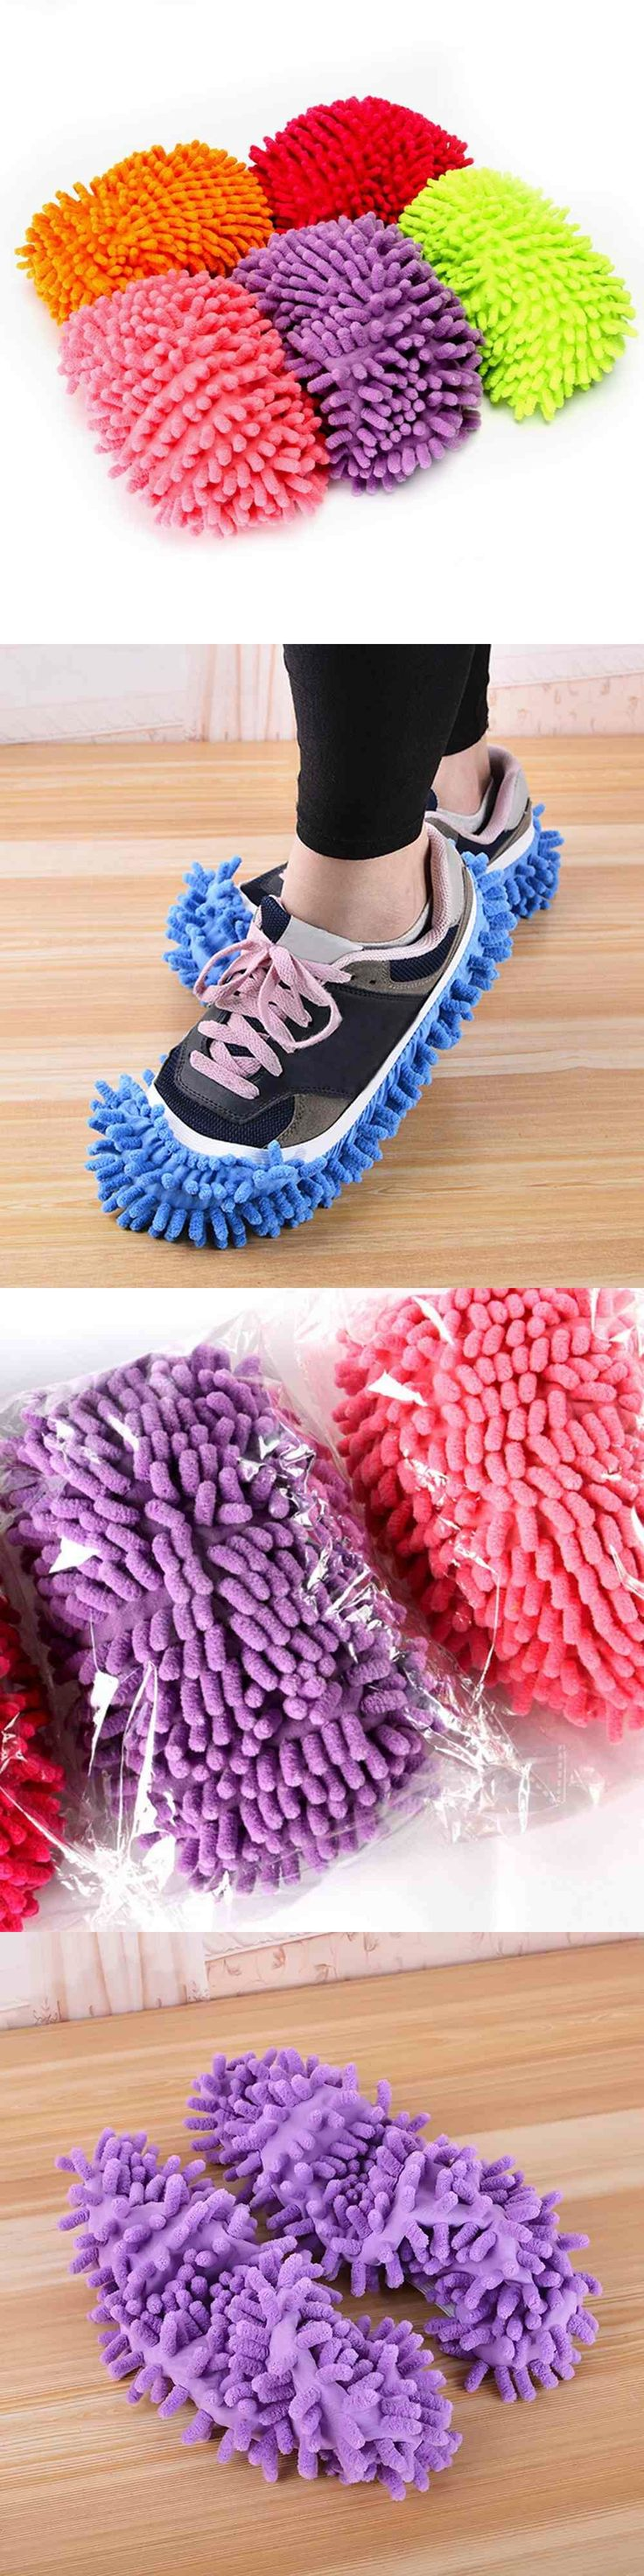 2pcs Home Mop Sweep Floor cleaning duster cloth housework lazy soft Slipper shoes Color Random